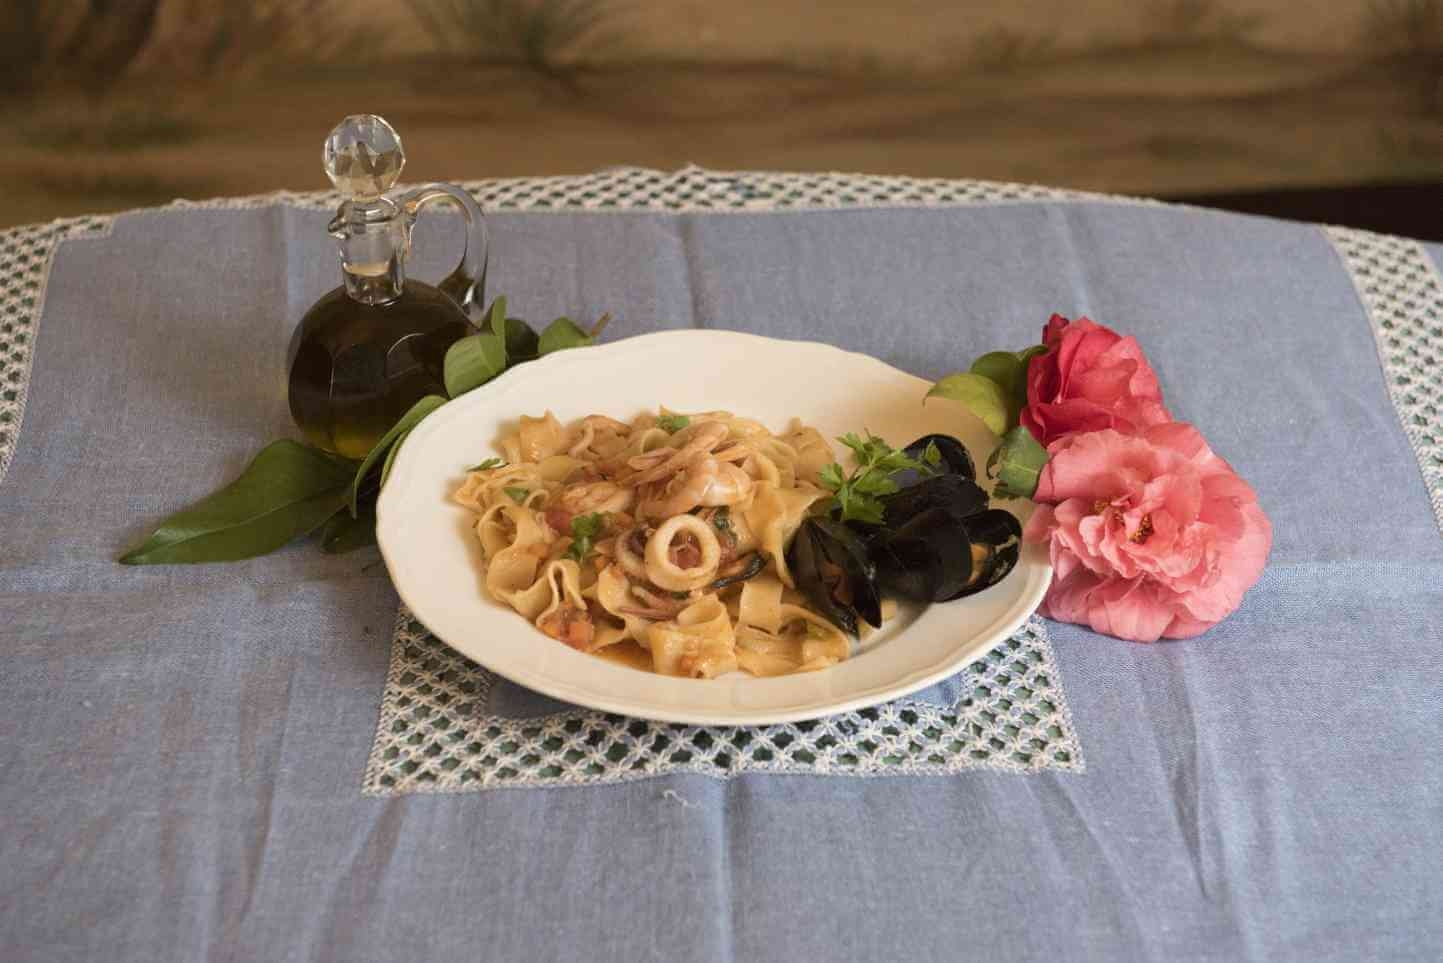 Pasta -  Homemade pasta with seafood